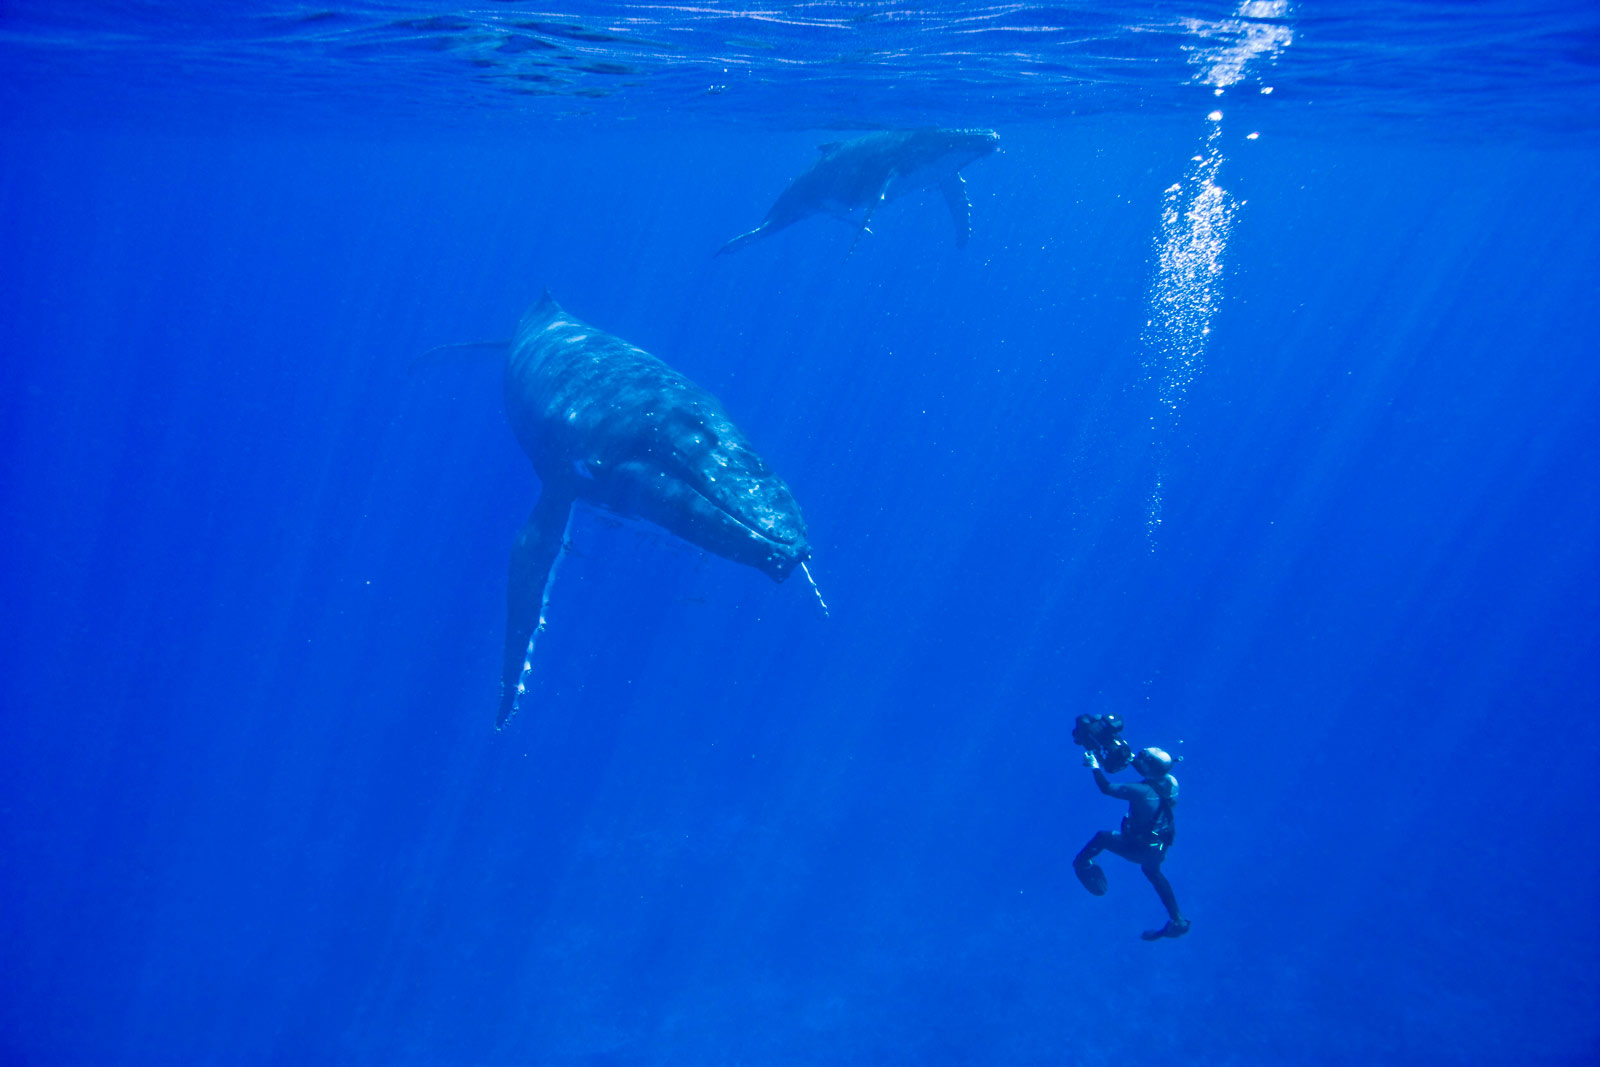 Doug diving with humpbacks in Tonga